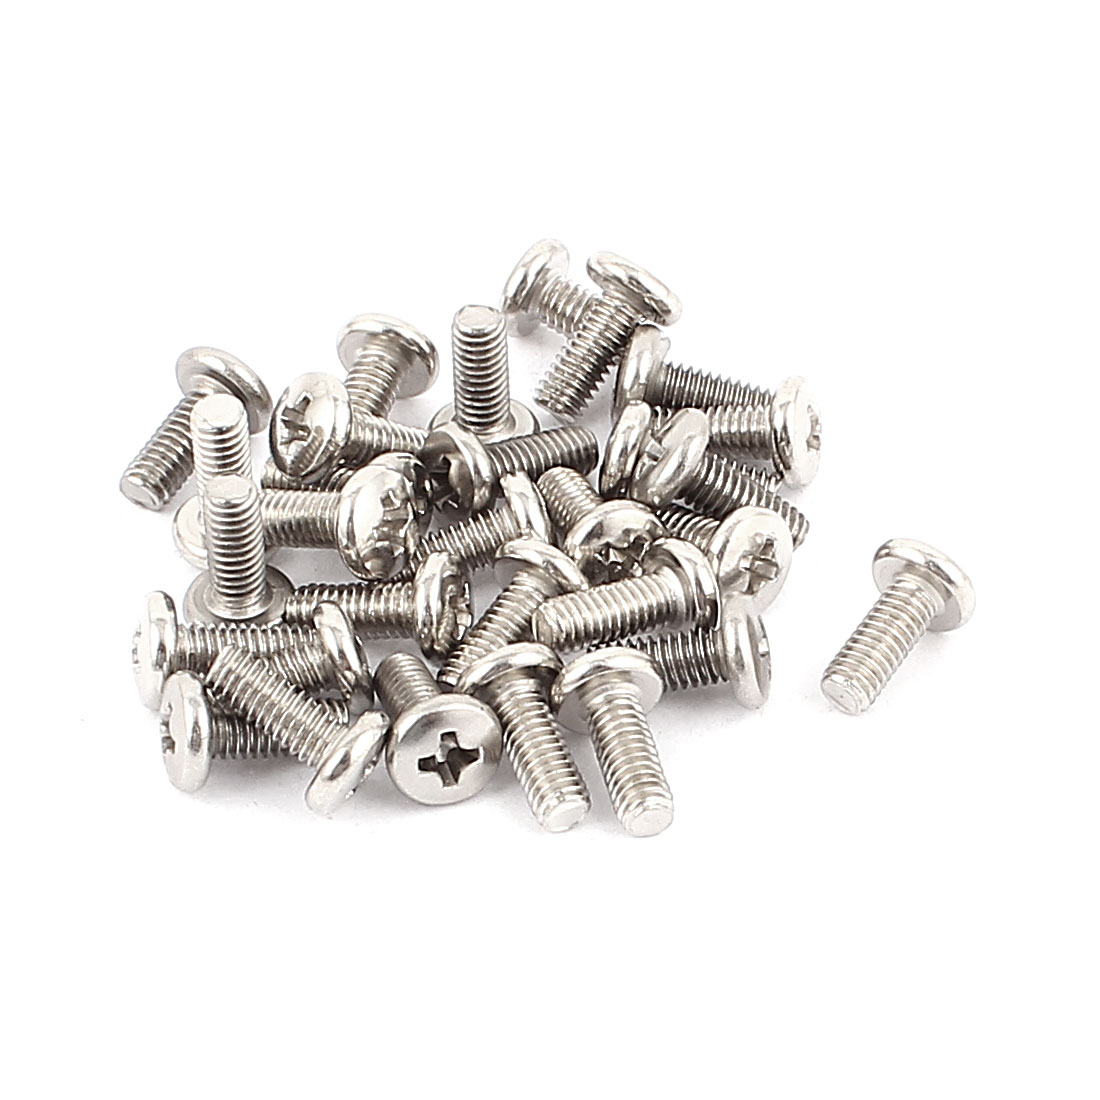 30pcs Stainless Steel M4x10mm Phillips Pan Head Machine Screws